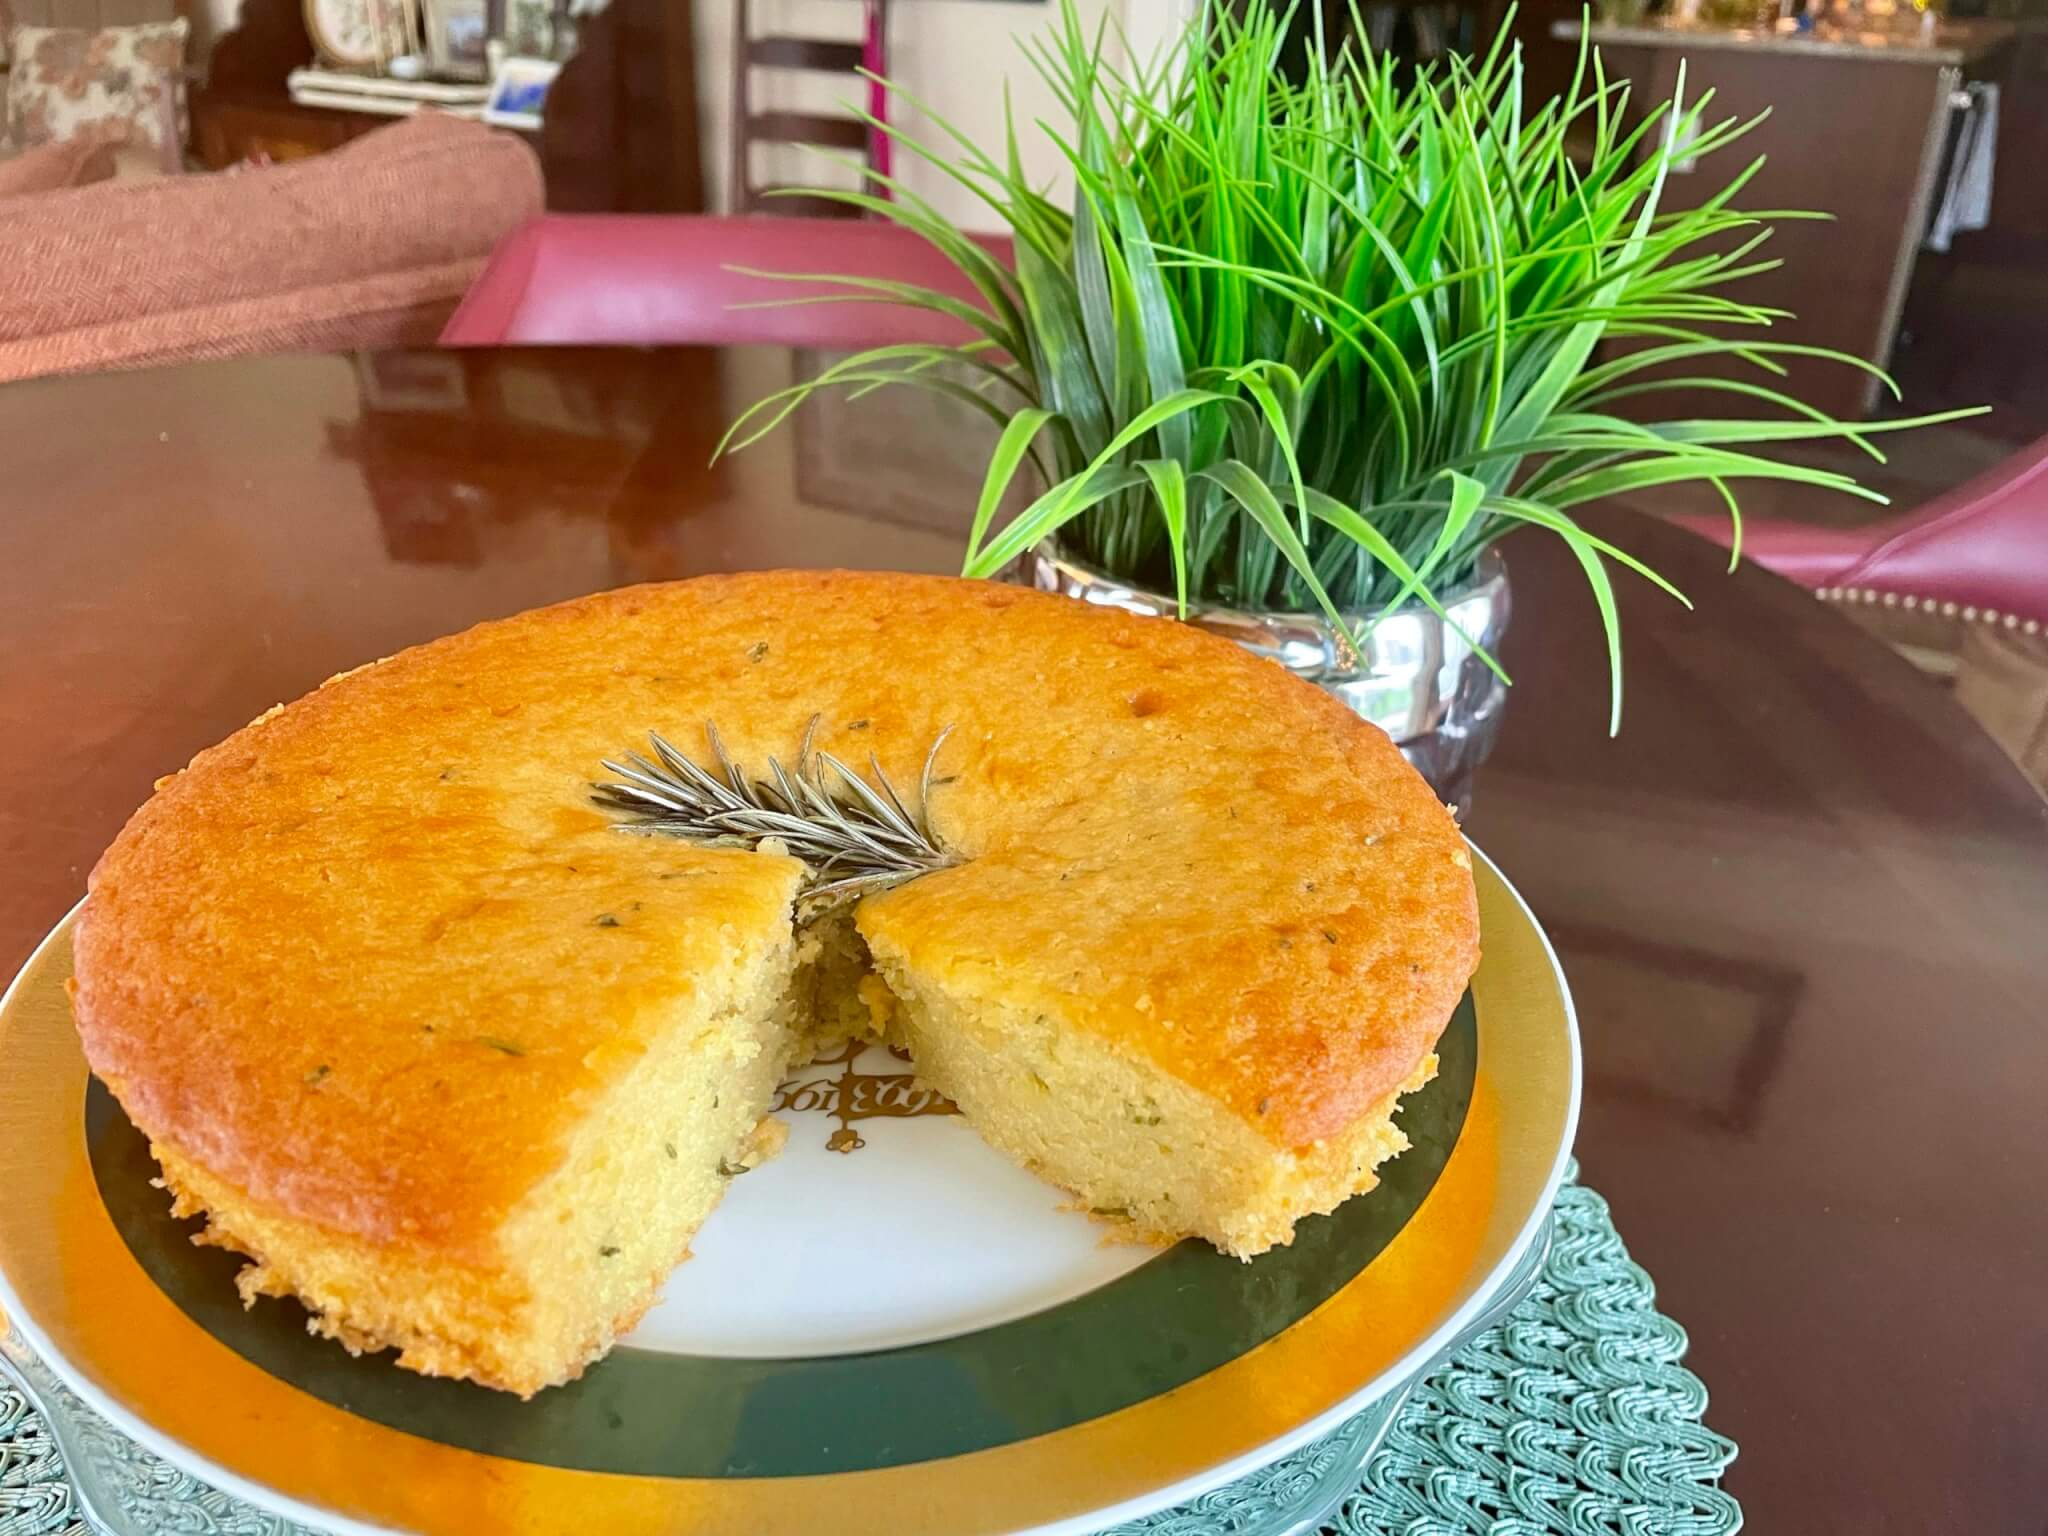 This humble cake expertly balances sweet, savory, tangy, and herbal notes into a lovely treat that's suitable for breakfast, dessert, or a tea-time snack!